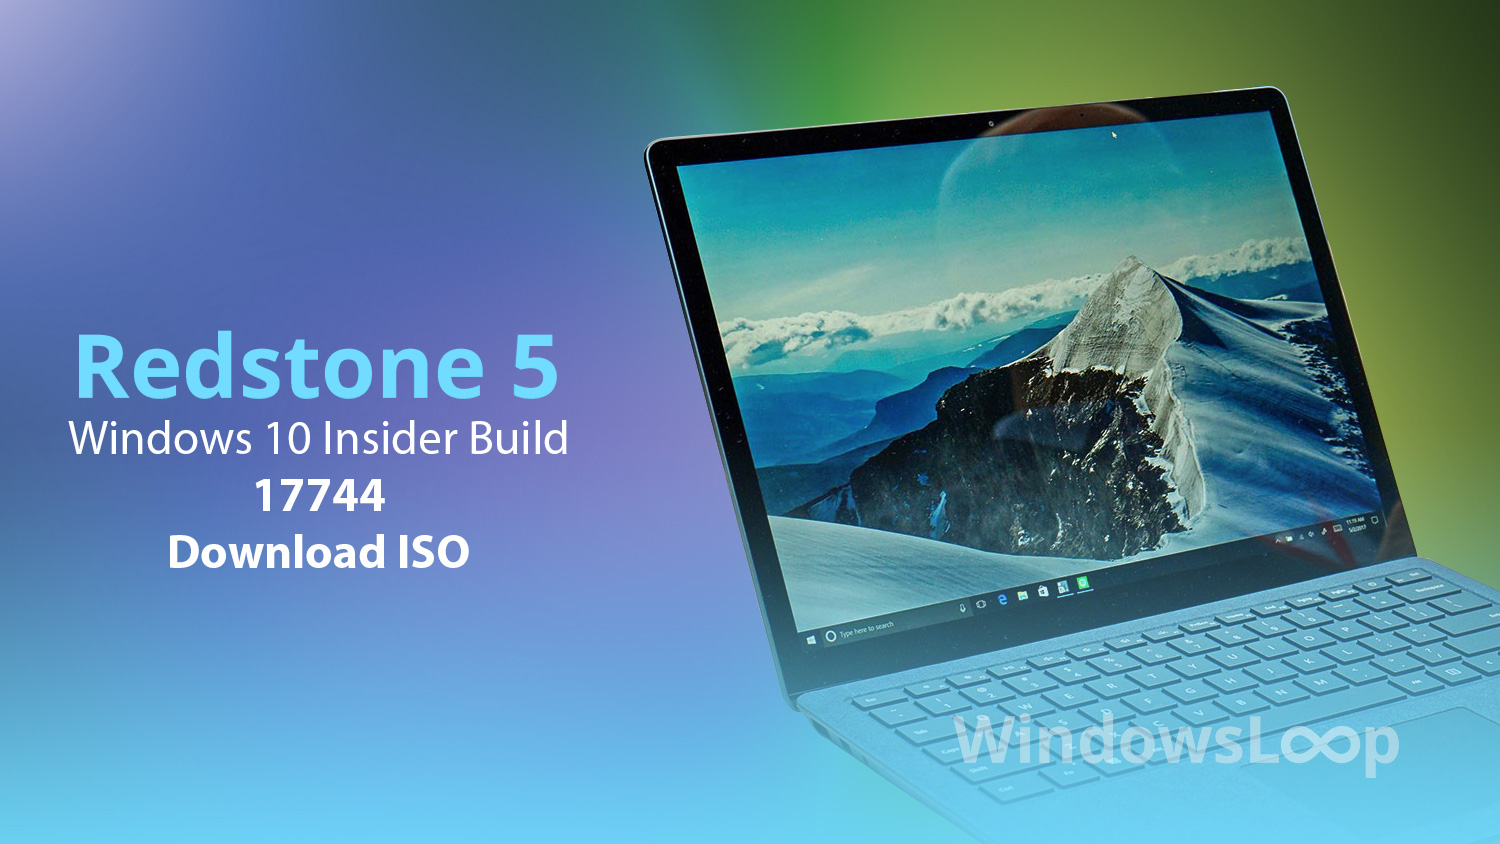 Download Windows 10 Build 17744 ISO